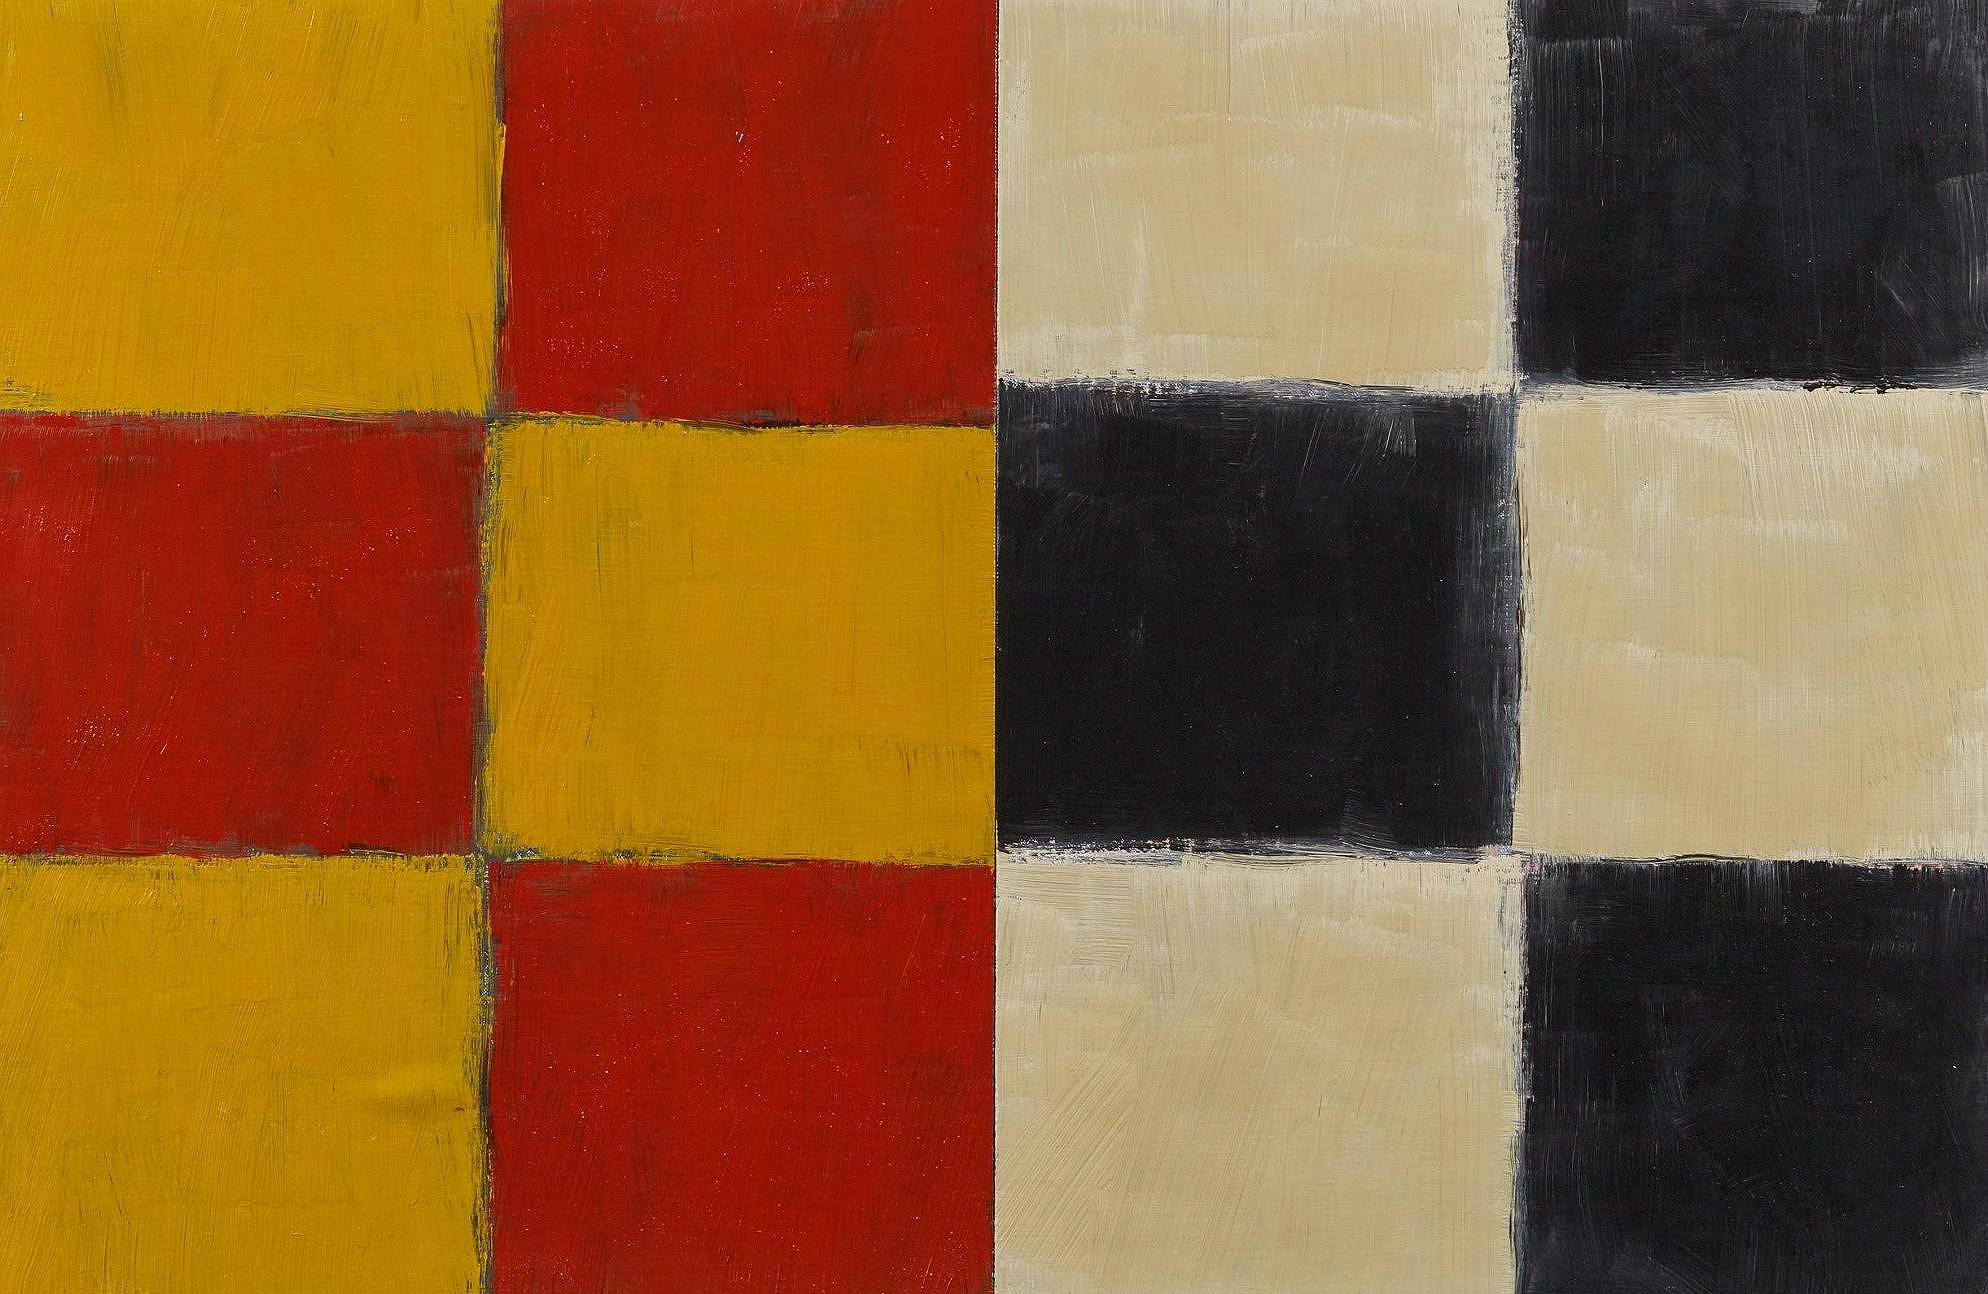 Sean Scully, Small Union Yellow, 1997. Courtesy Tanya Baxter Contemporary.